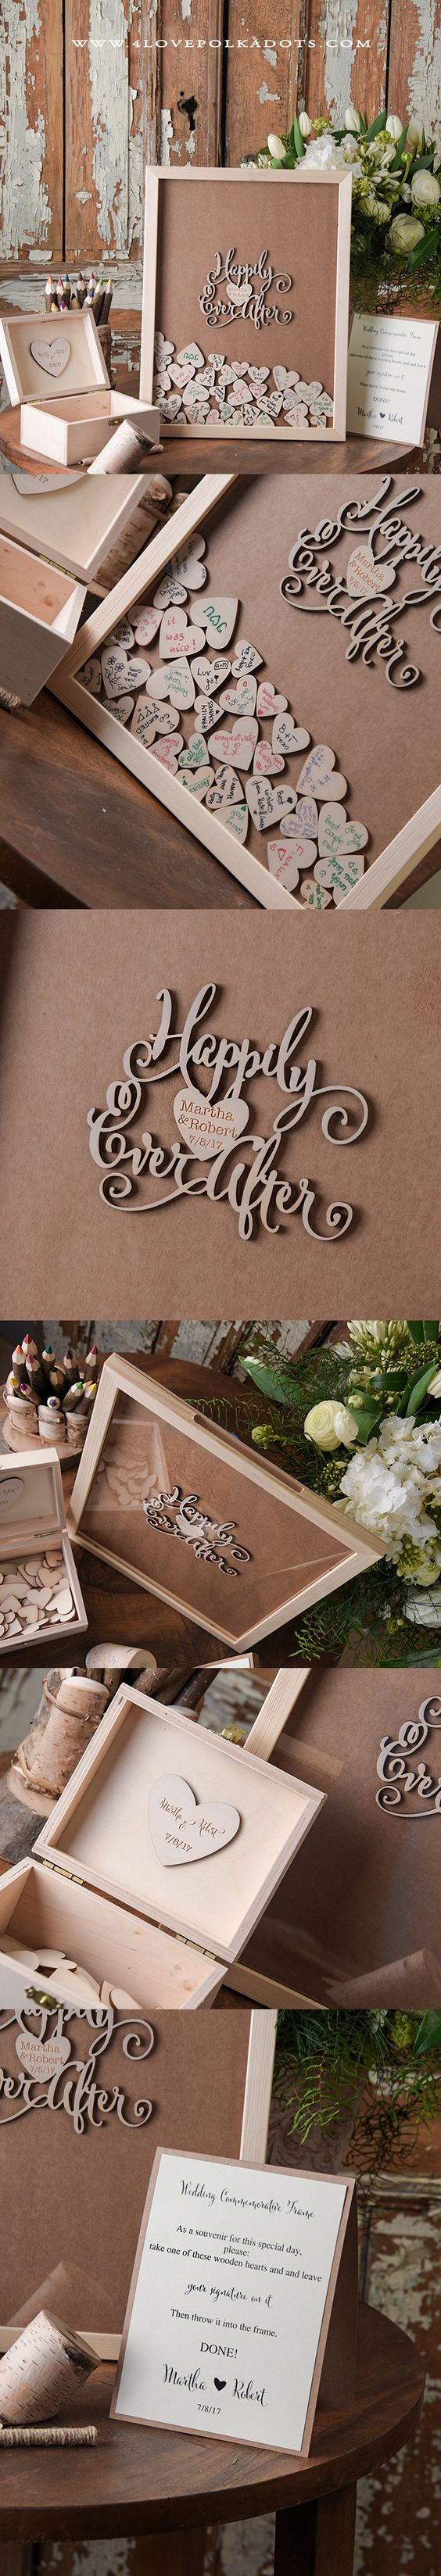 Happily Ever After ! Alternative Wooden Wedding Guest Book Frame || @4lovepolkadots